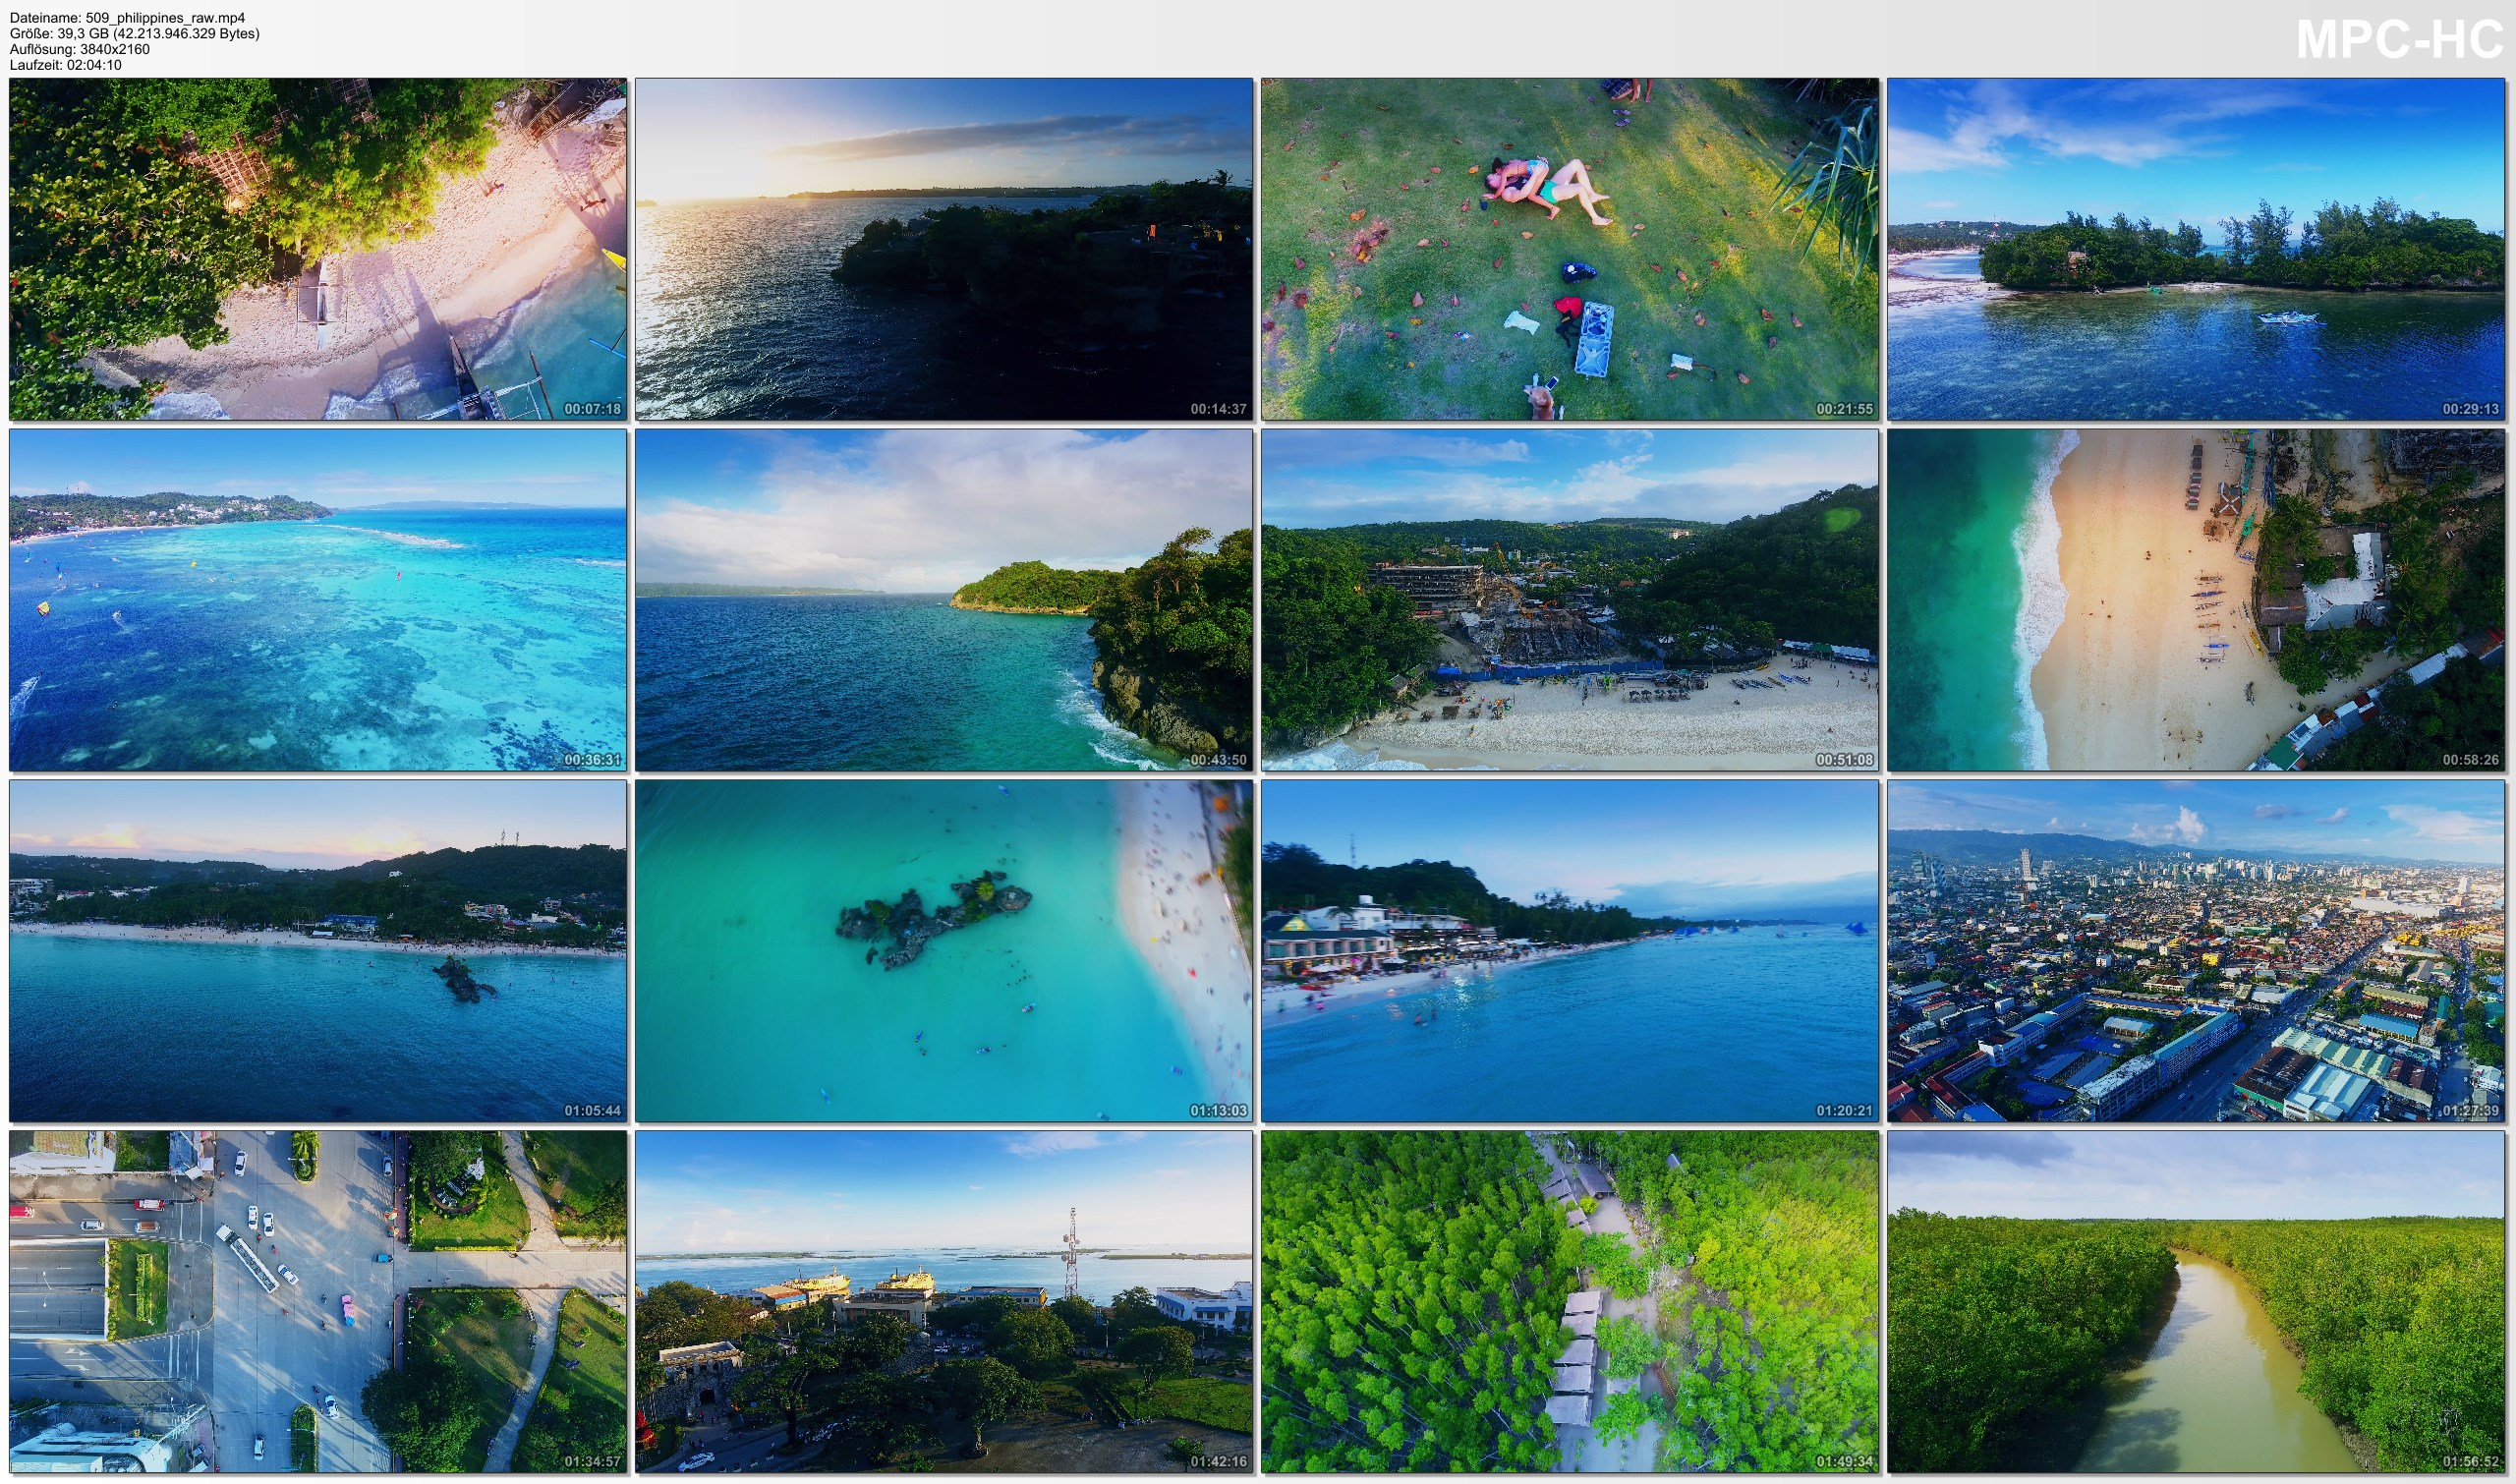 Drone Pictures from Video 【4K】Drone RAW Footage | These are the PHILIPPINES 2020 | Boracay | Cebu City | UltraHD Stock Video